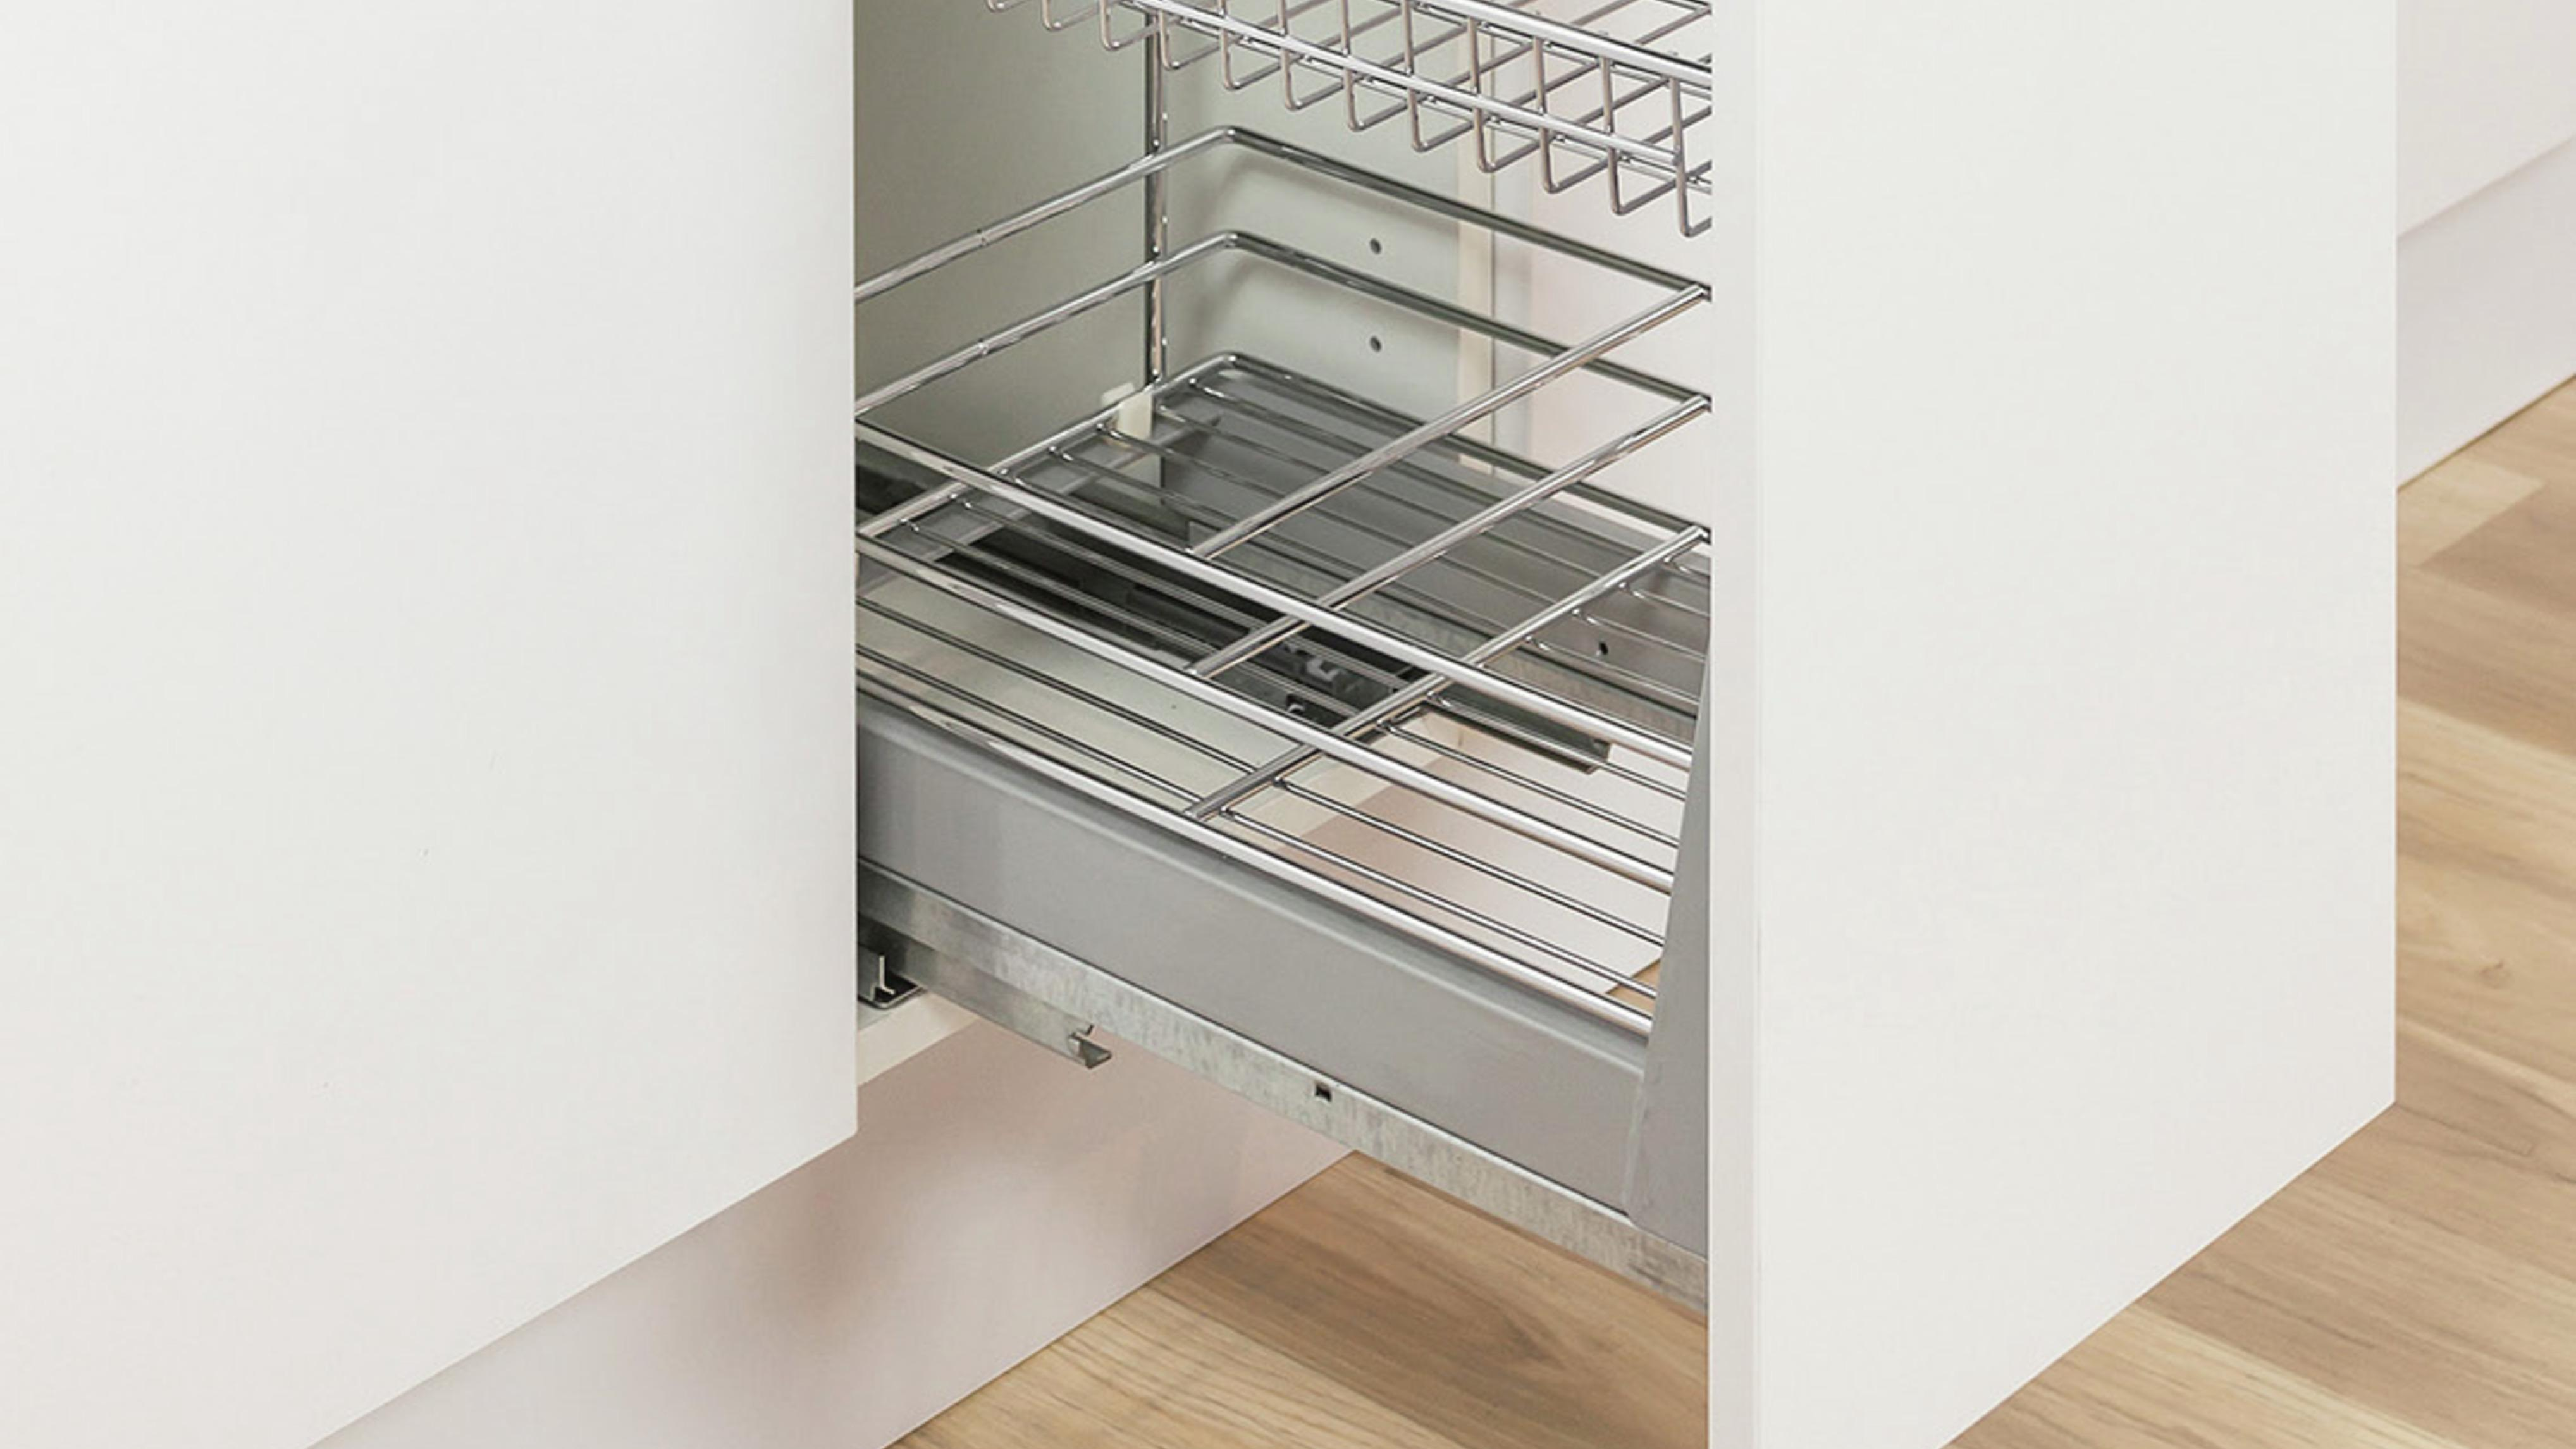 Kitchen cabinet drawer half pulled out, showing the slide out baskets inside.